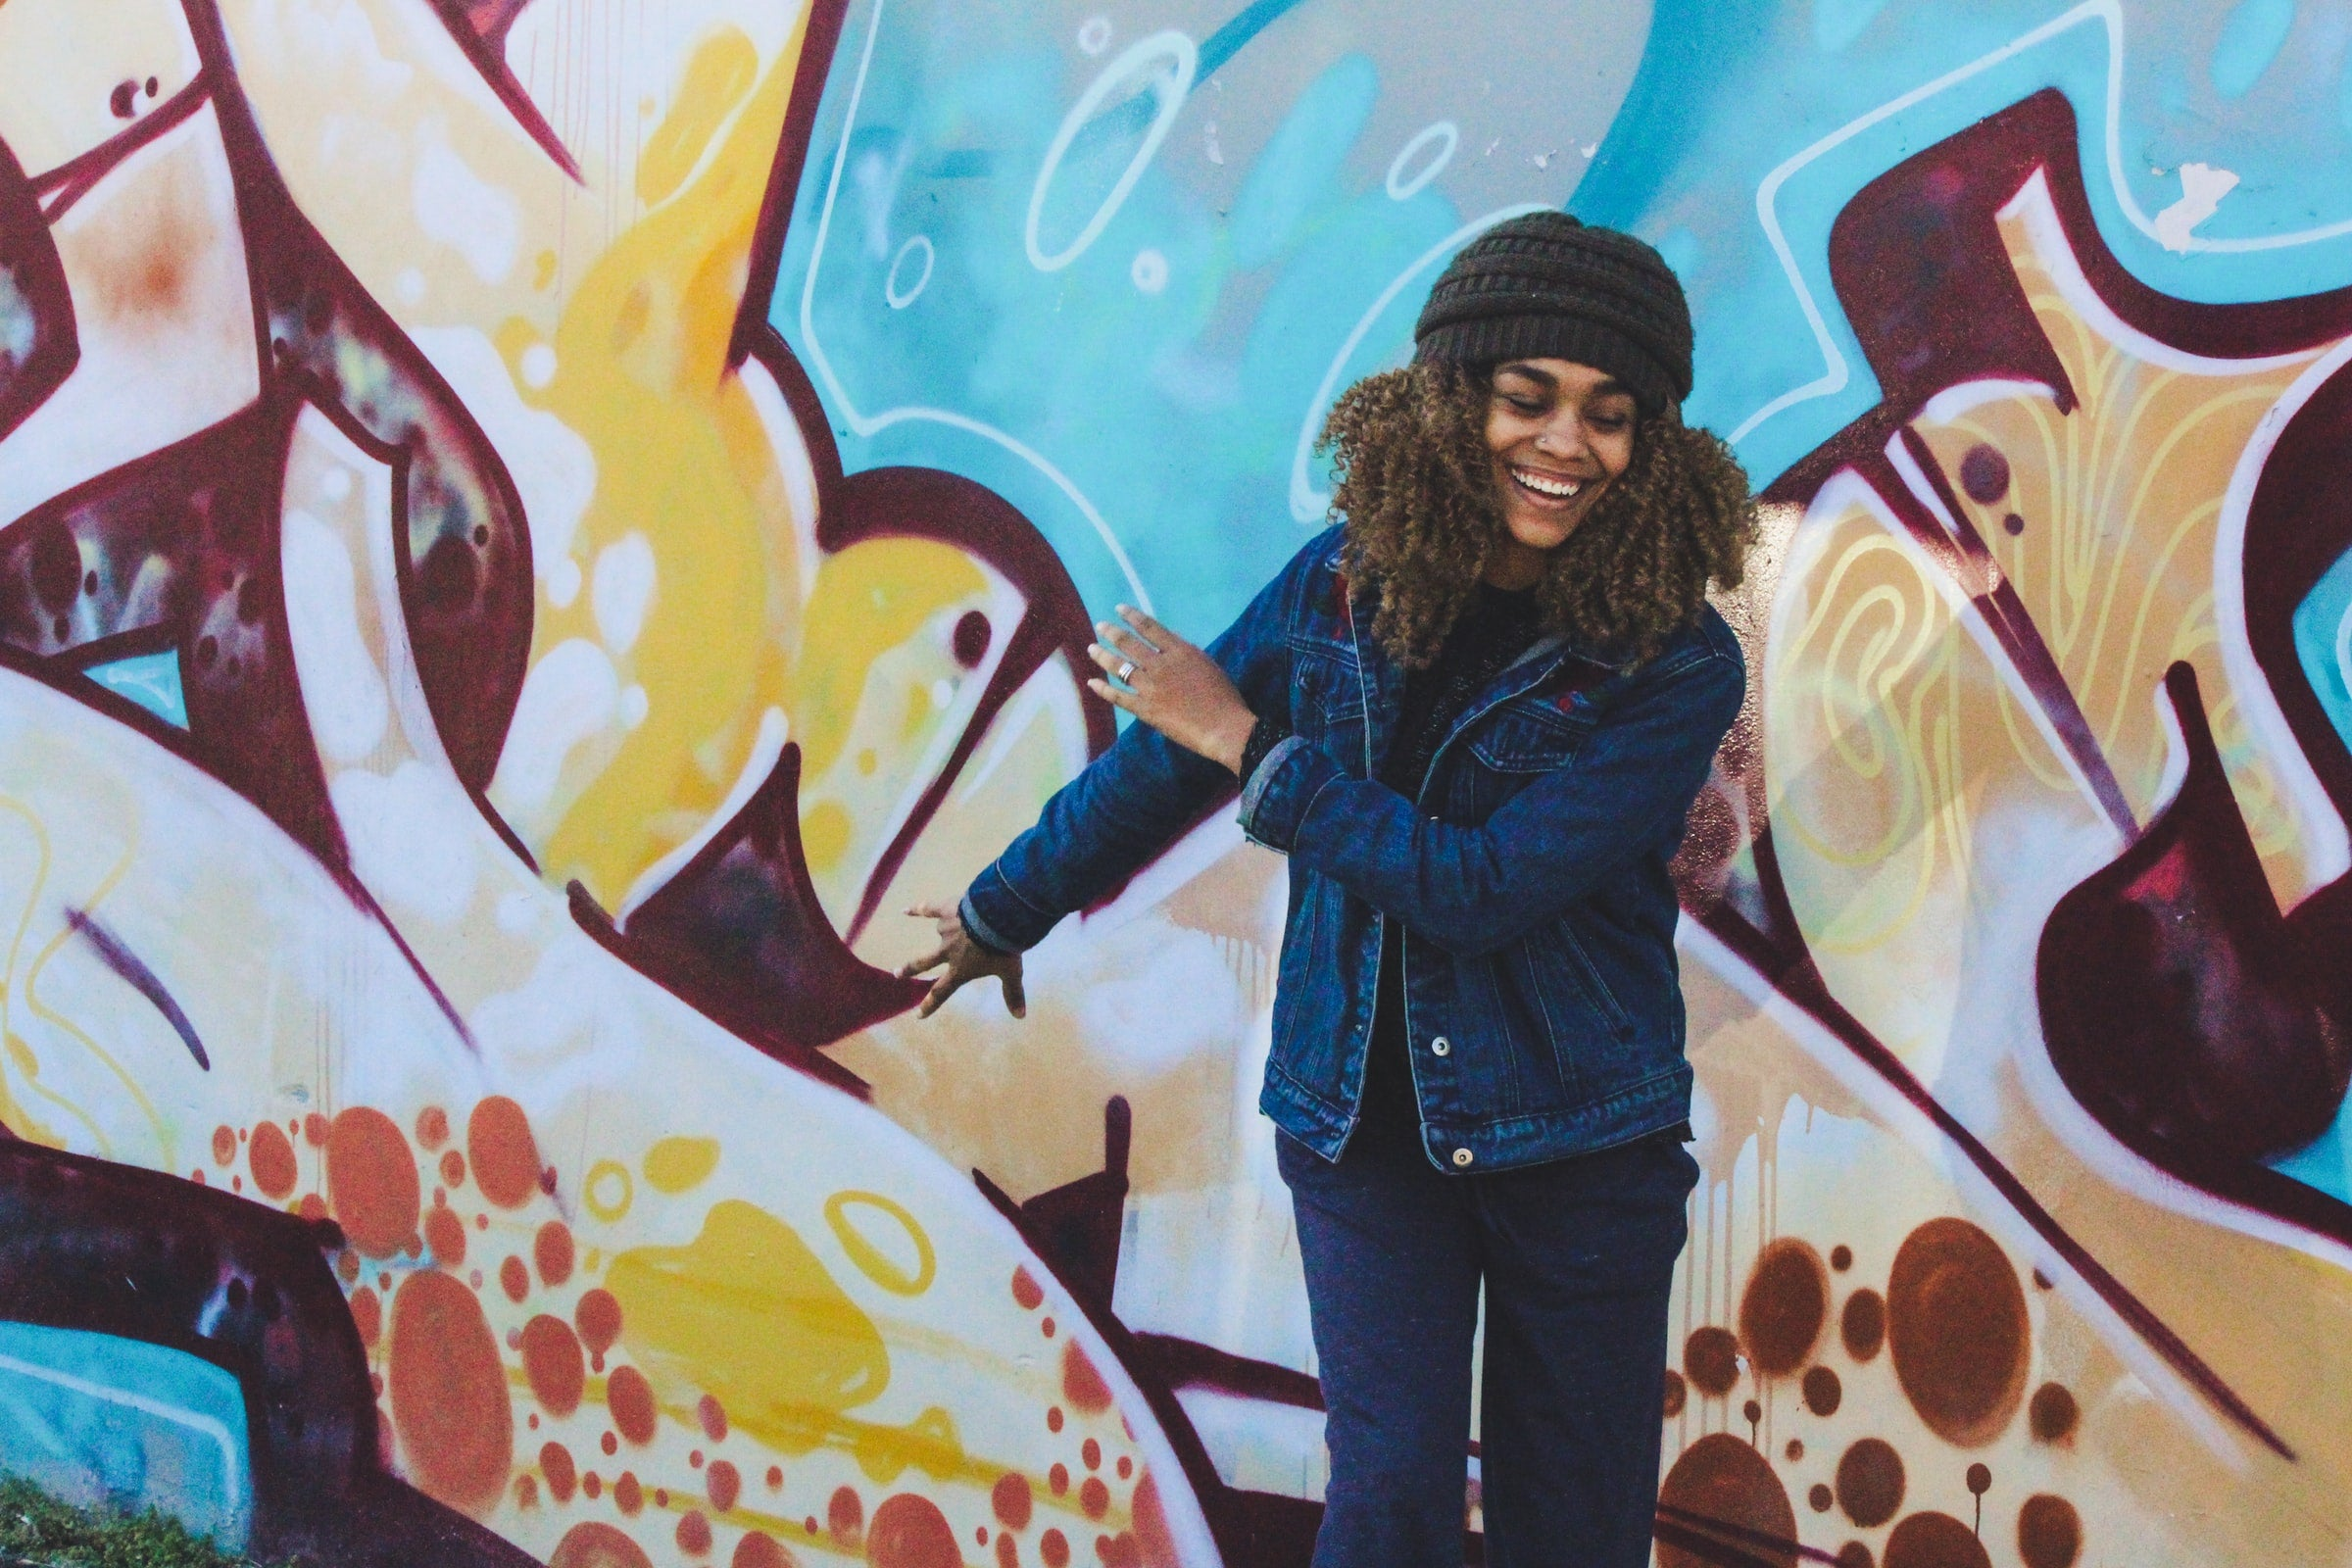 Image of a woman smiling and standing in front of street graffiti